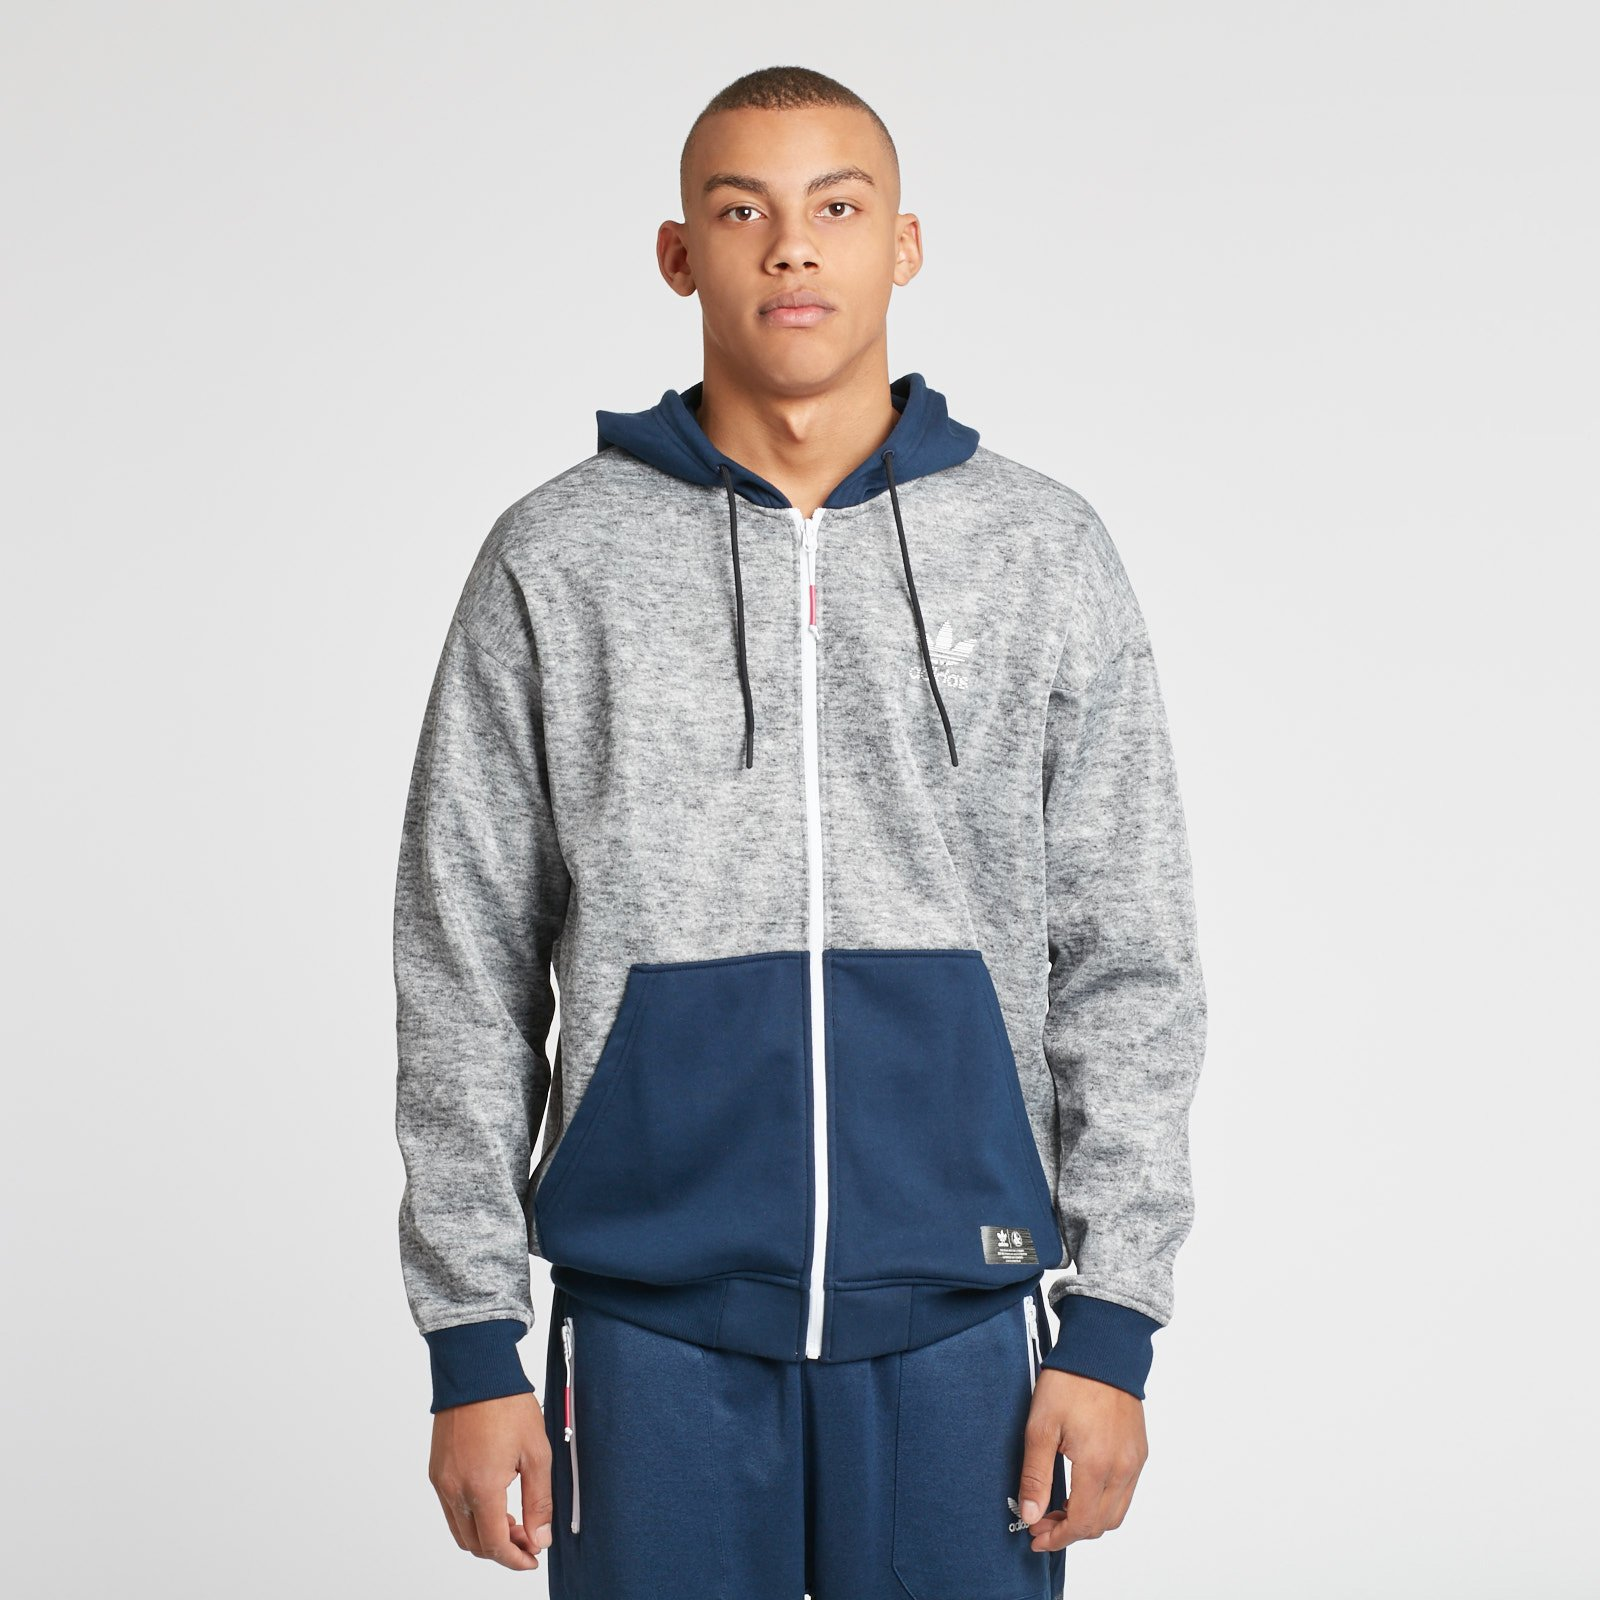 Adidas Zip Up Hood X United Arrows Sons Cd7724 Sneakersnstuff